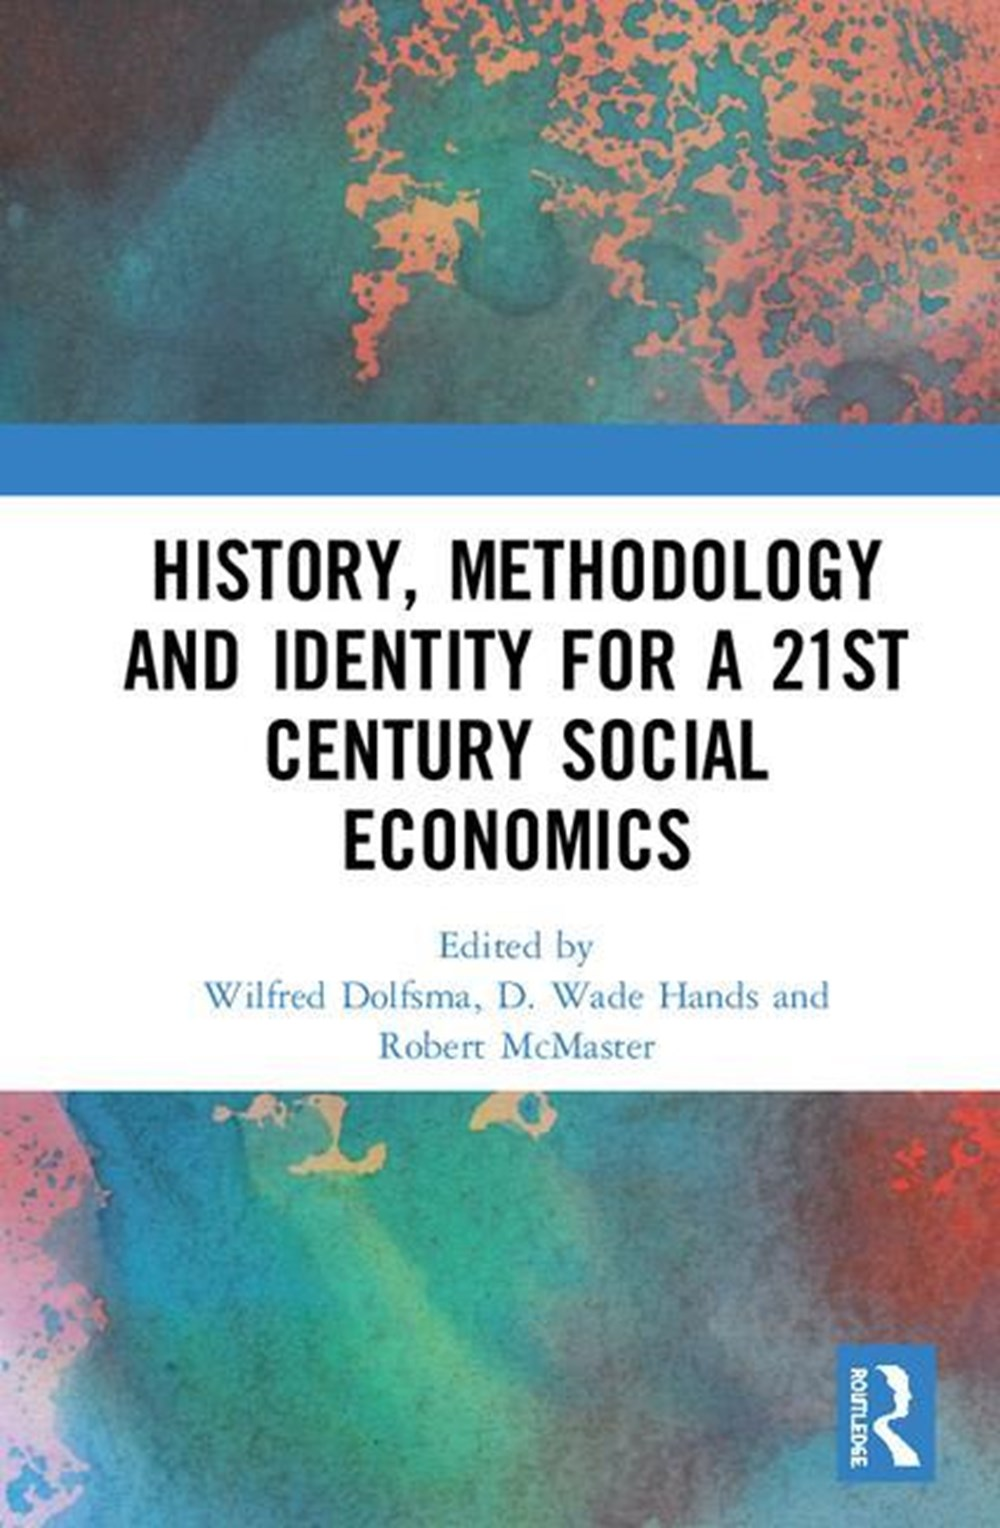 History, Methodology and Identity for a 21st Century Social Economics